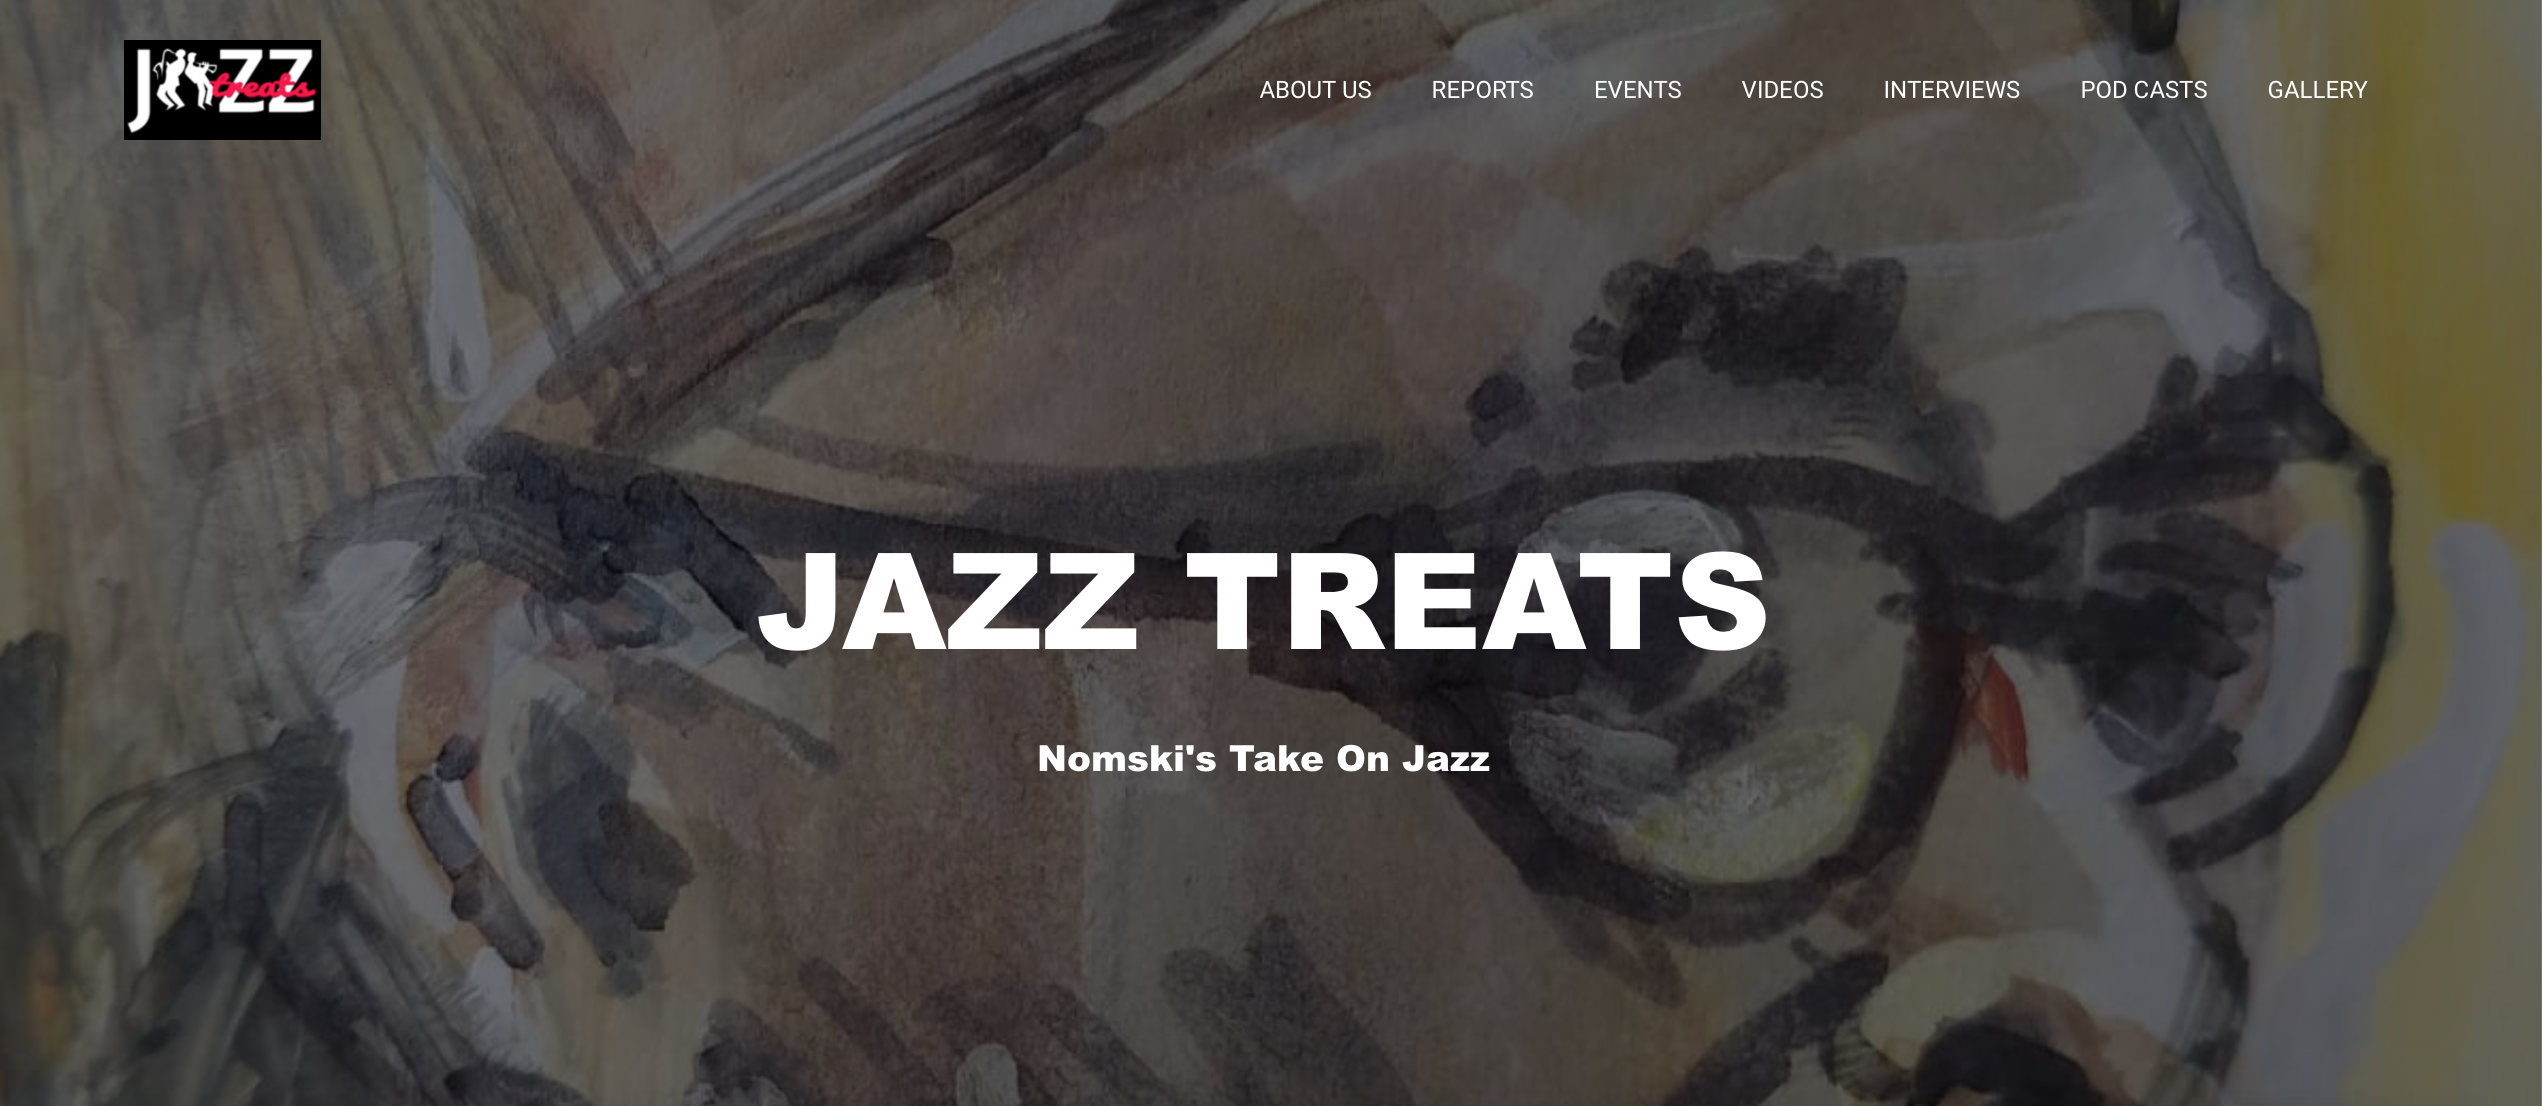 Jazz Treats